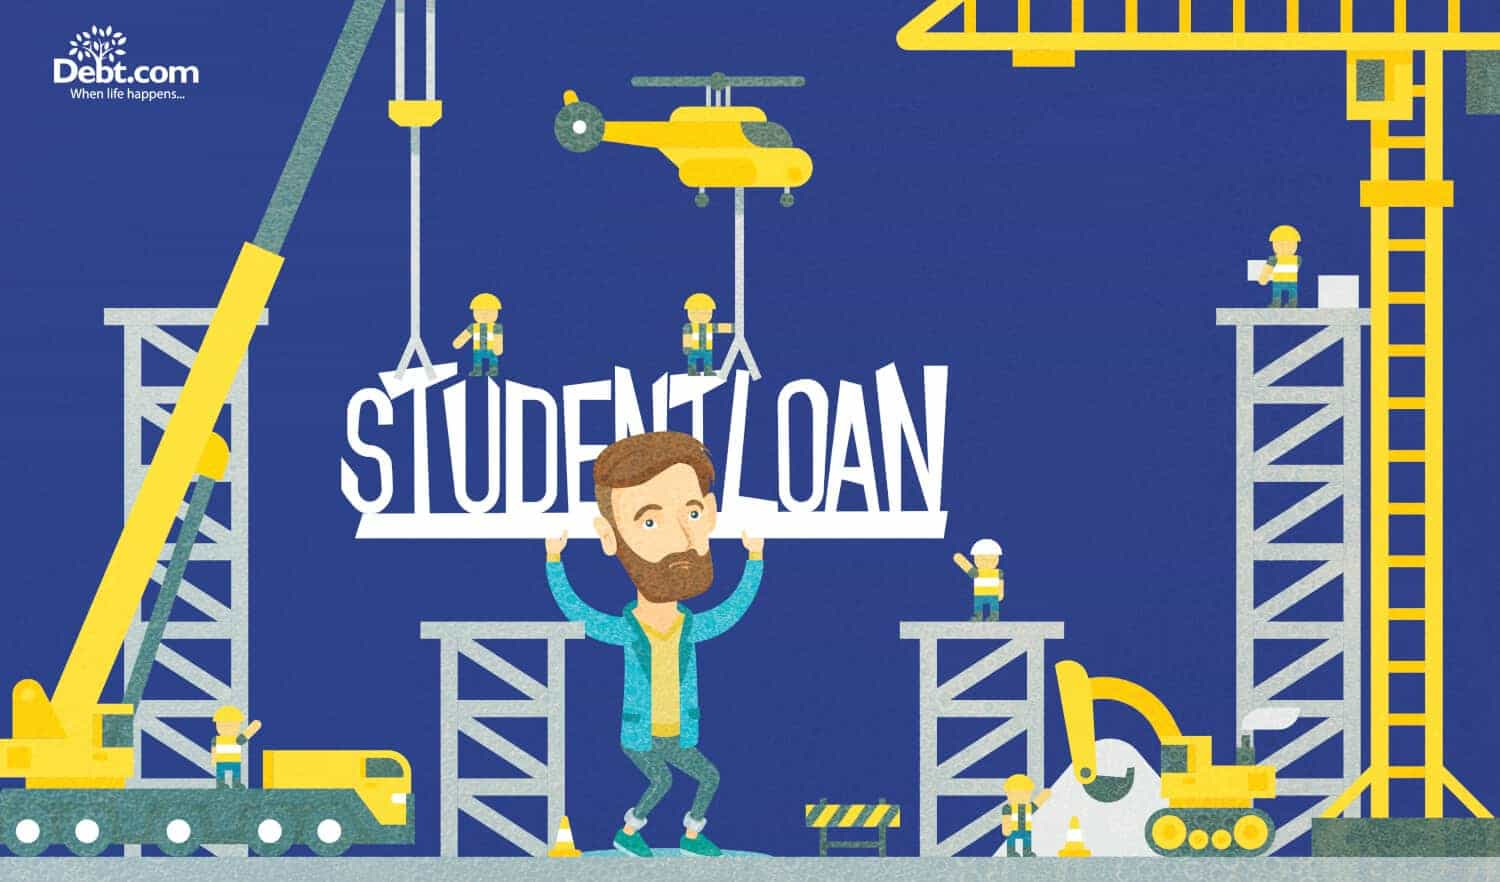 You can remove the burden of student loan debt from your shoulders with Public Service Loan Forgiveness